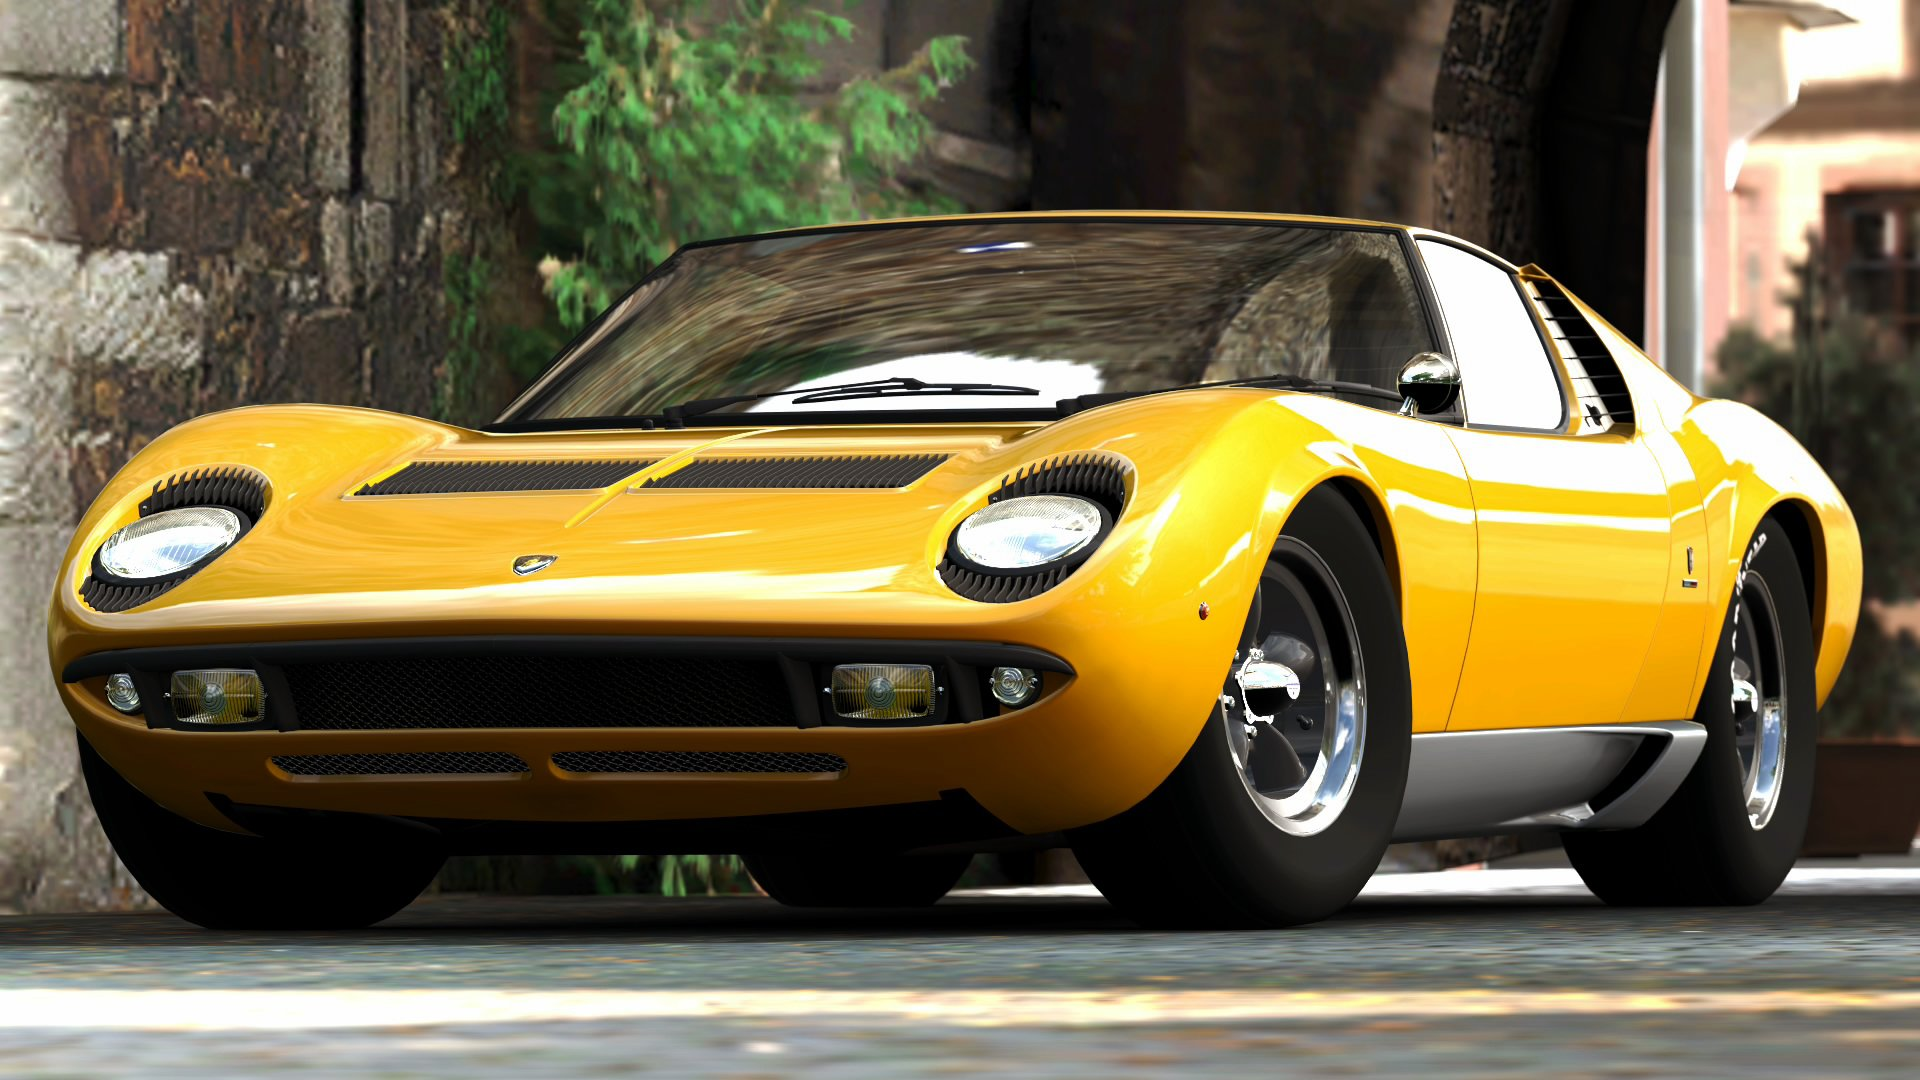 1966 Lamborghini Miura The First Supercar Ever